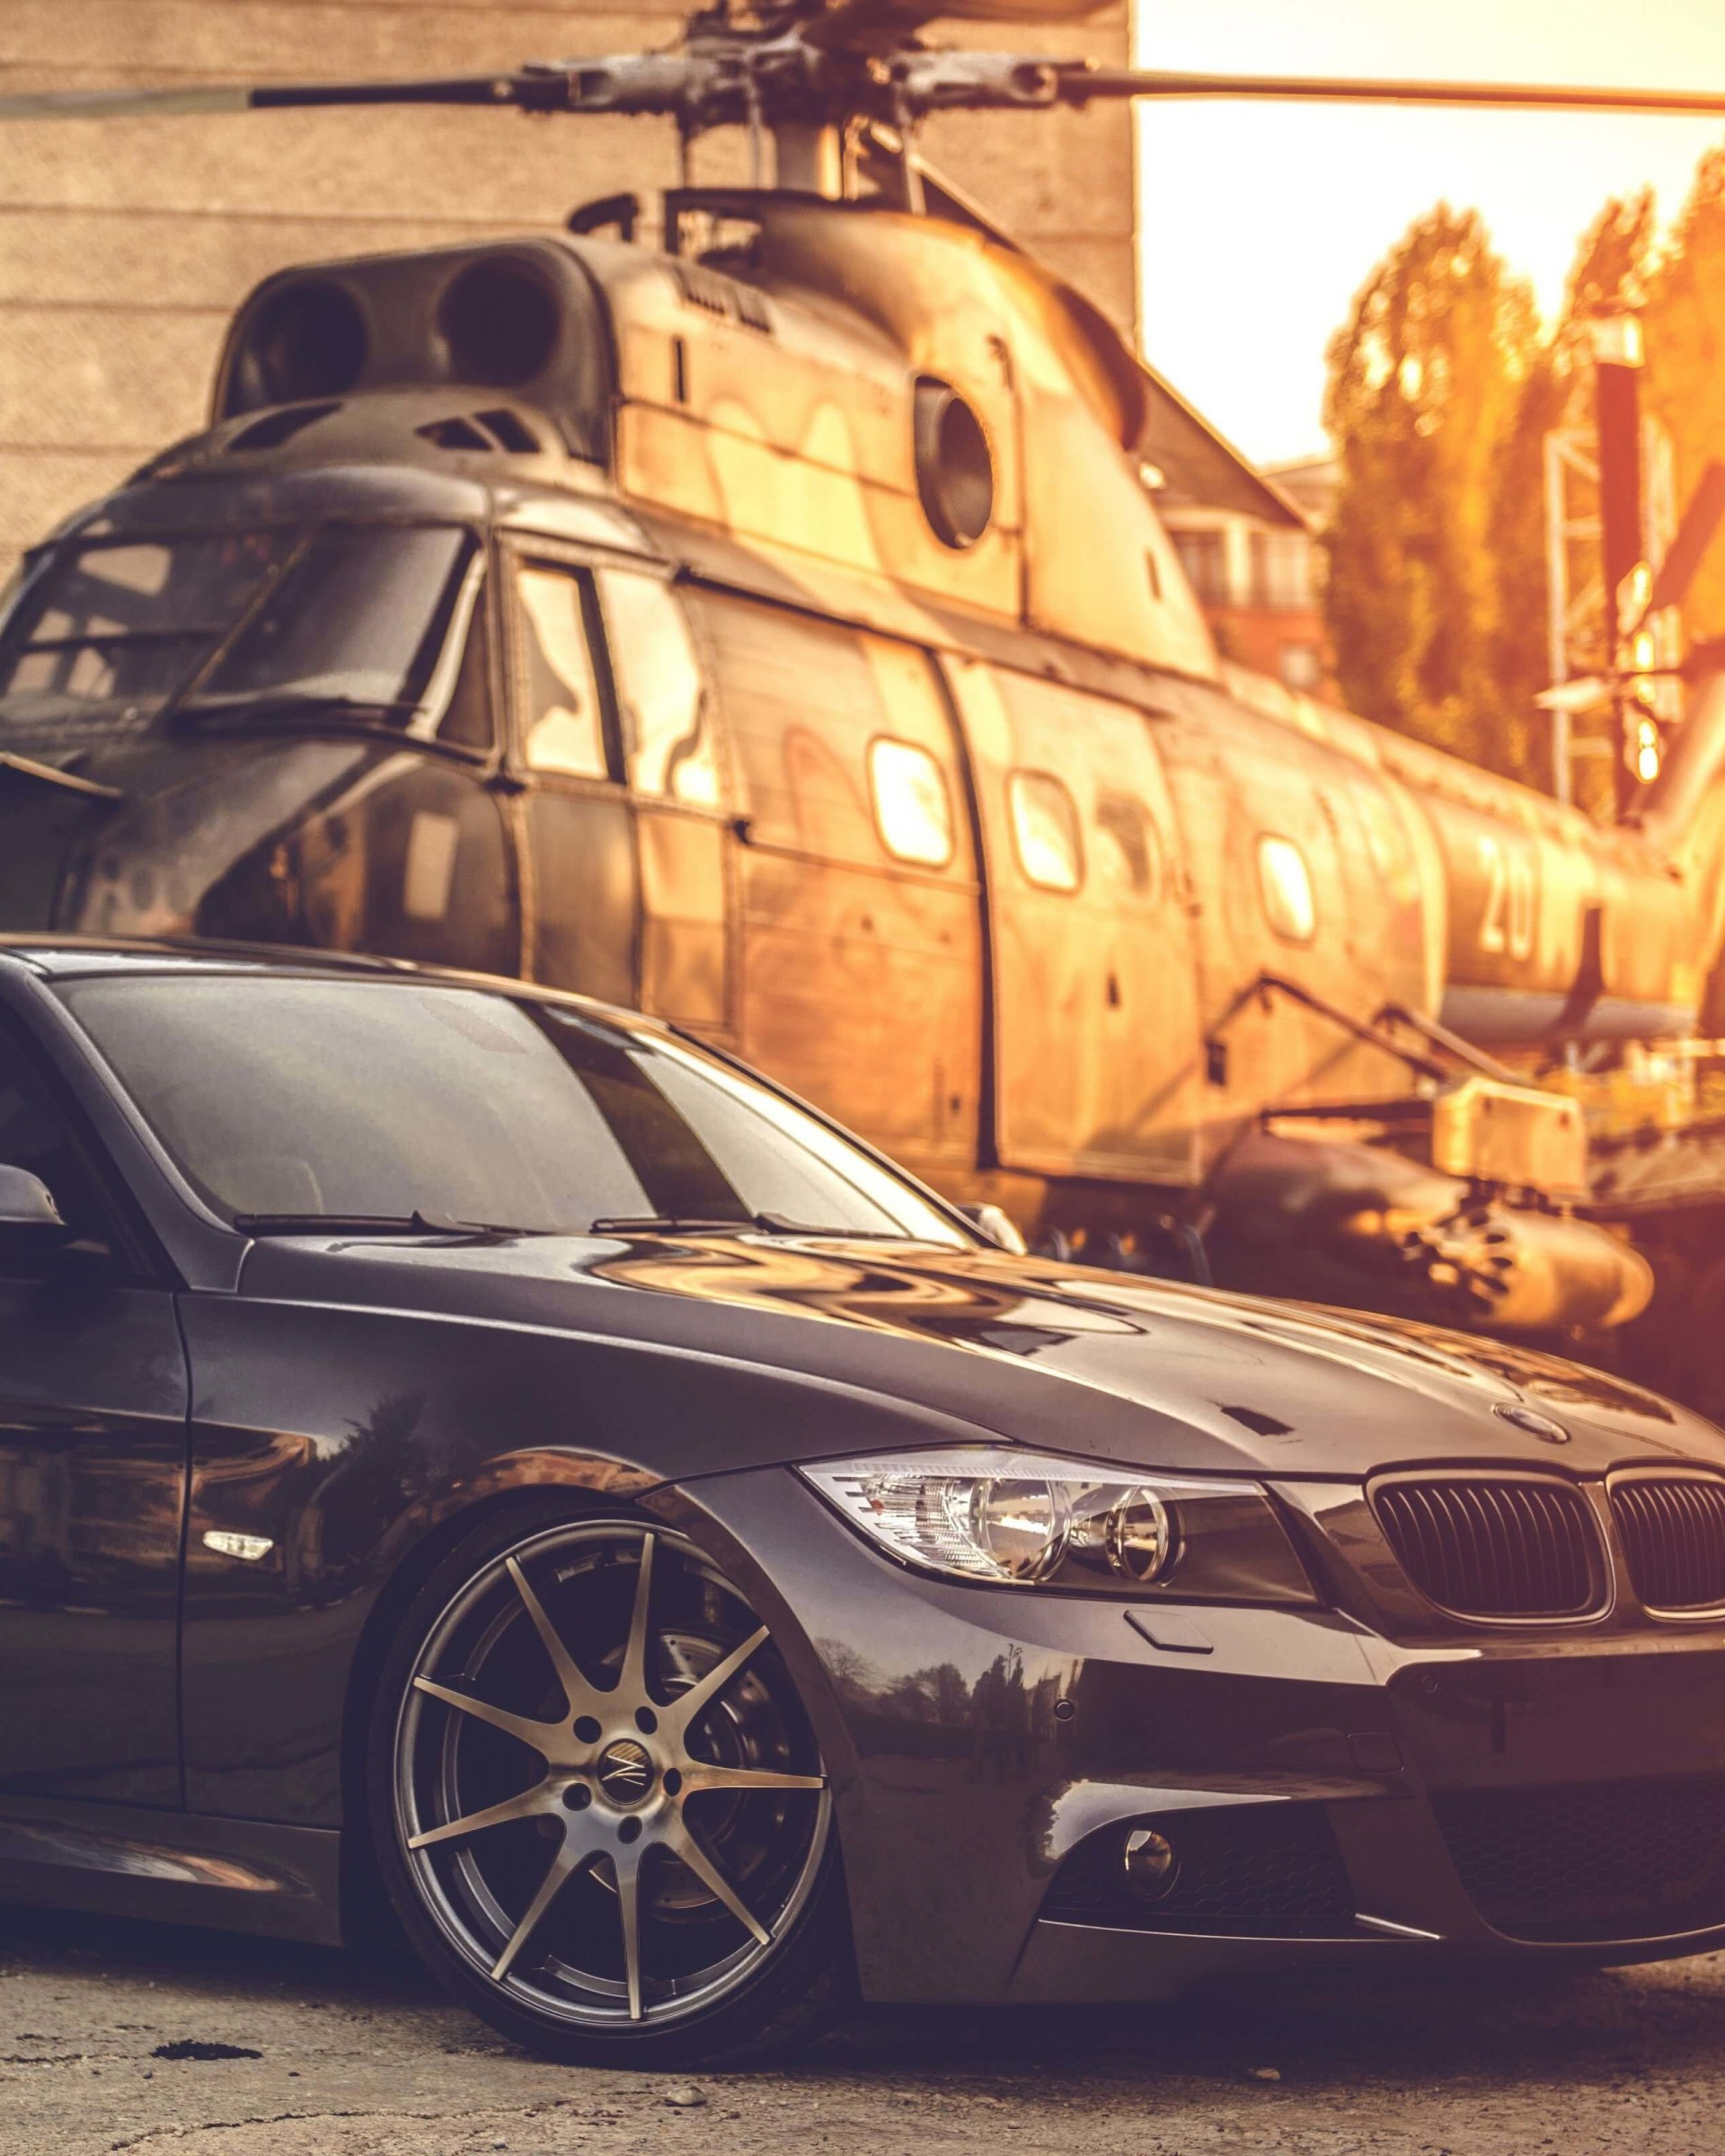 BMW E90 on Z-Performance Wheels Wallpaper for Google Nexus 7